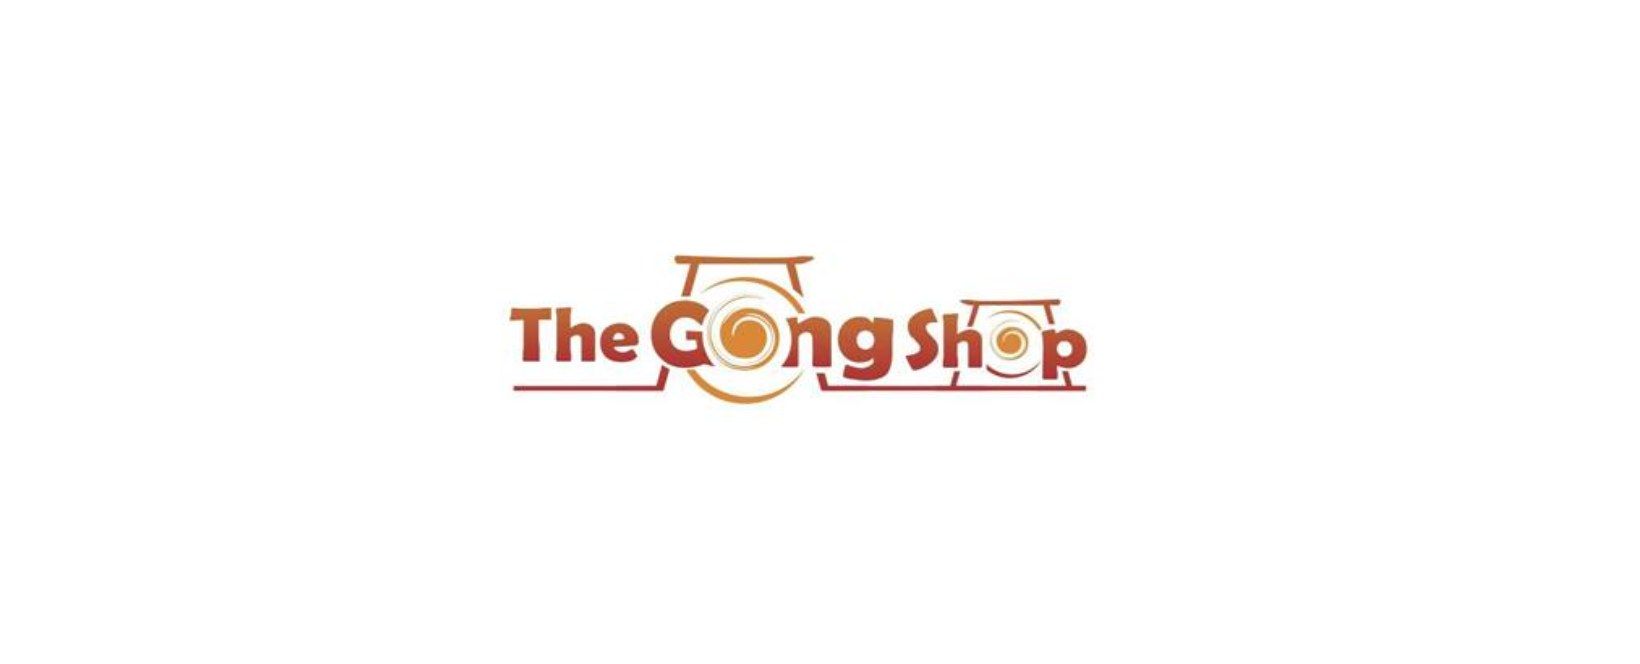 The Gong Shop Discount Code 2021